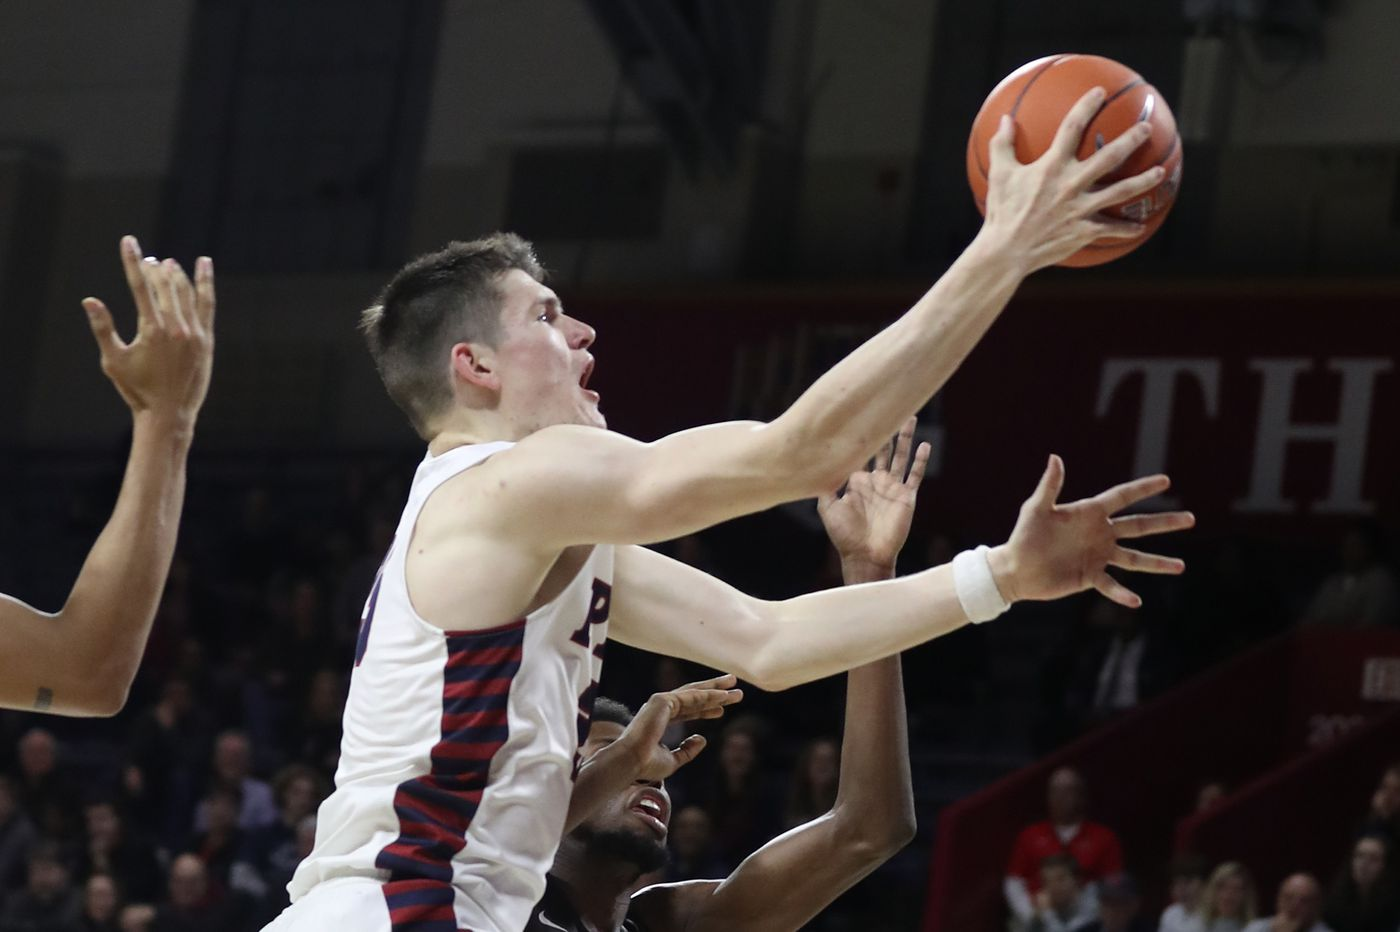 Penn tops Brown, 73-68, to keep Ivy tourney hopes alive